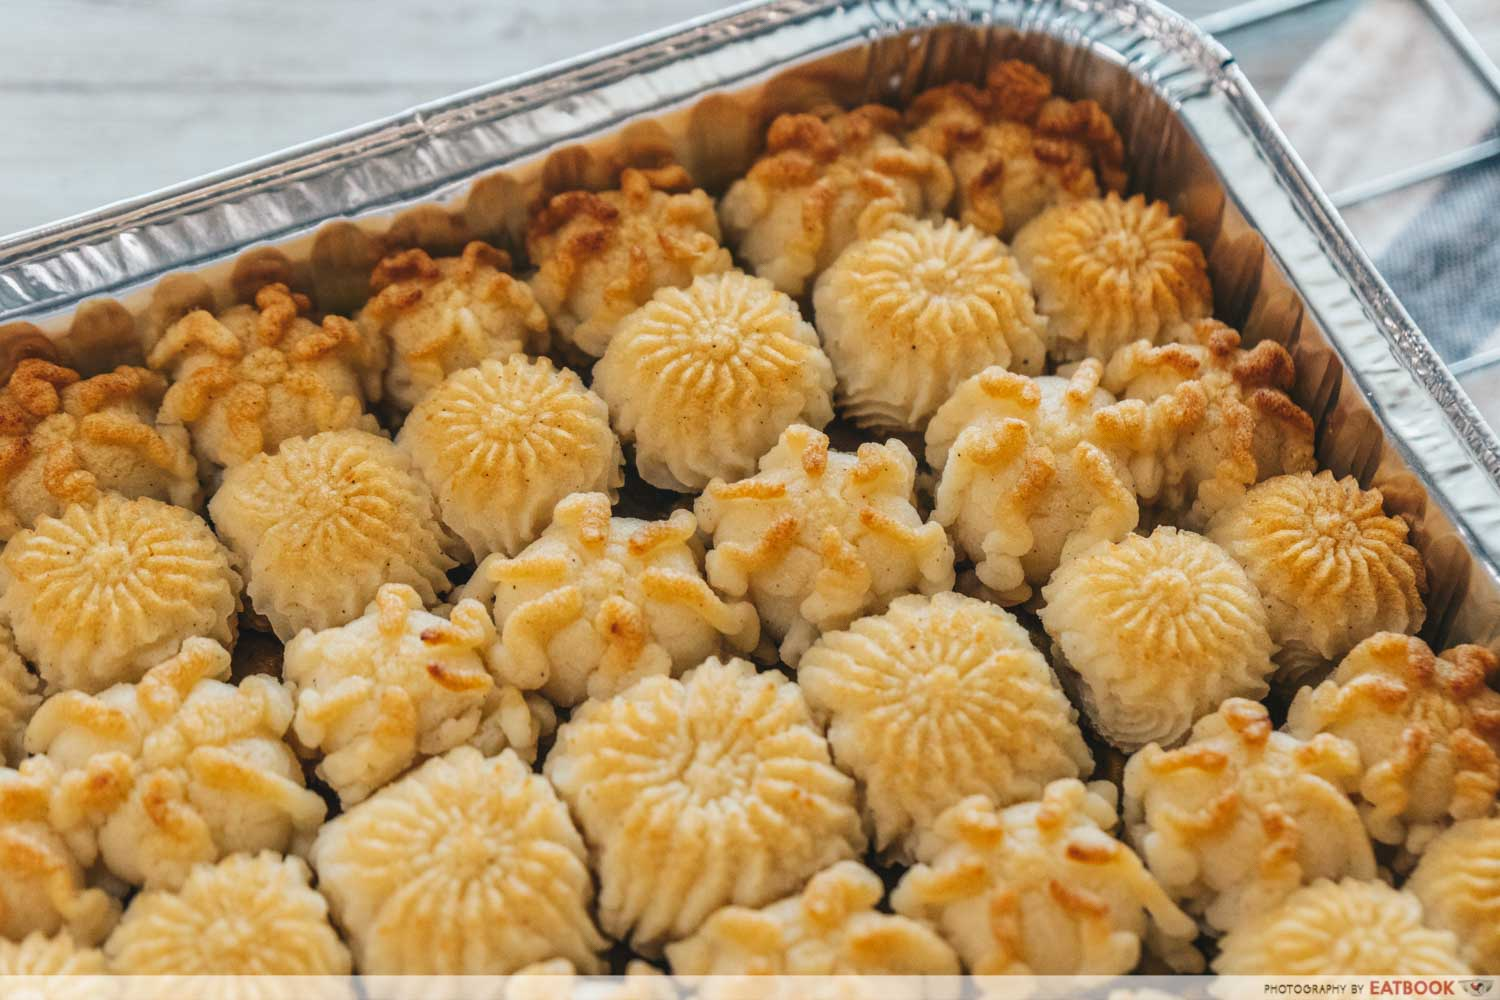 Shepherds Pie Delivery - beautiful mashed potatoes